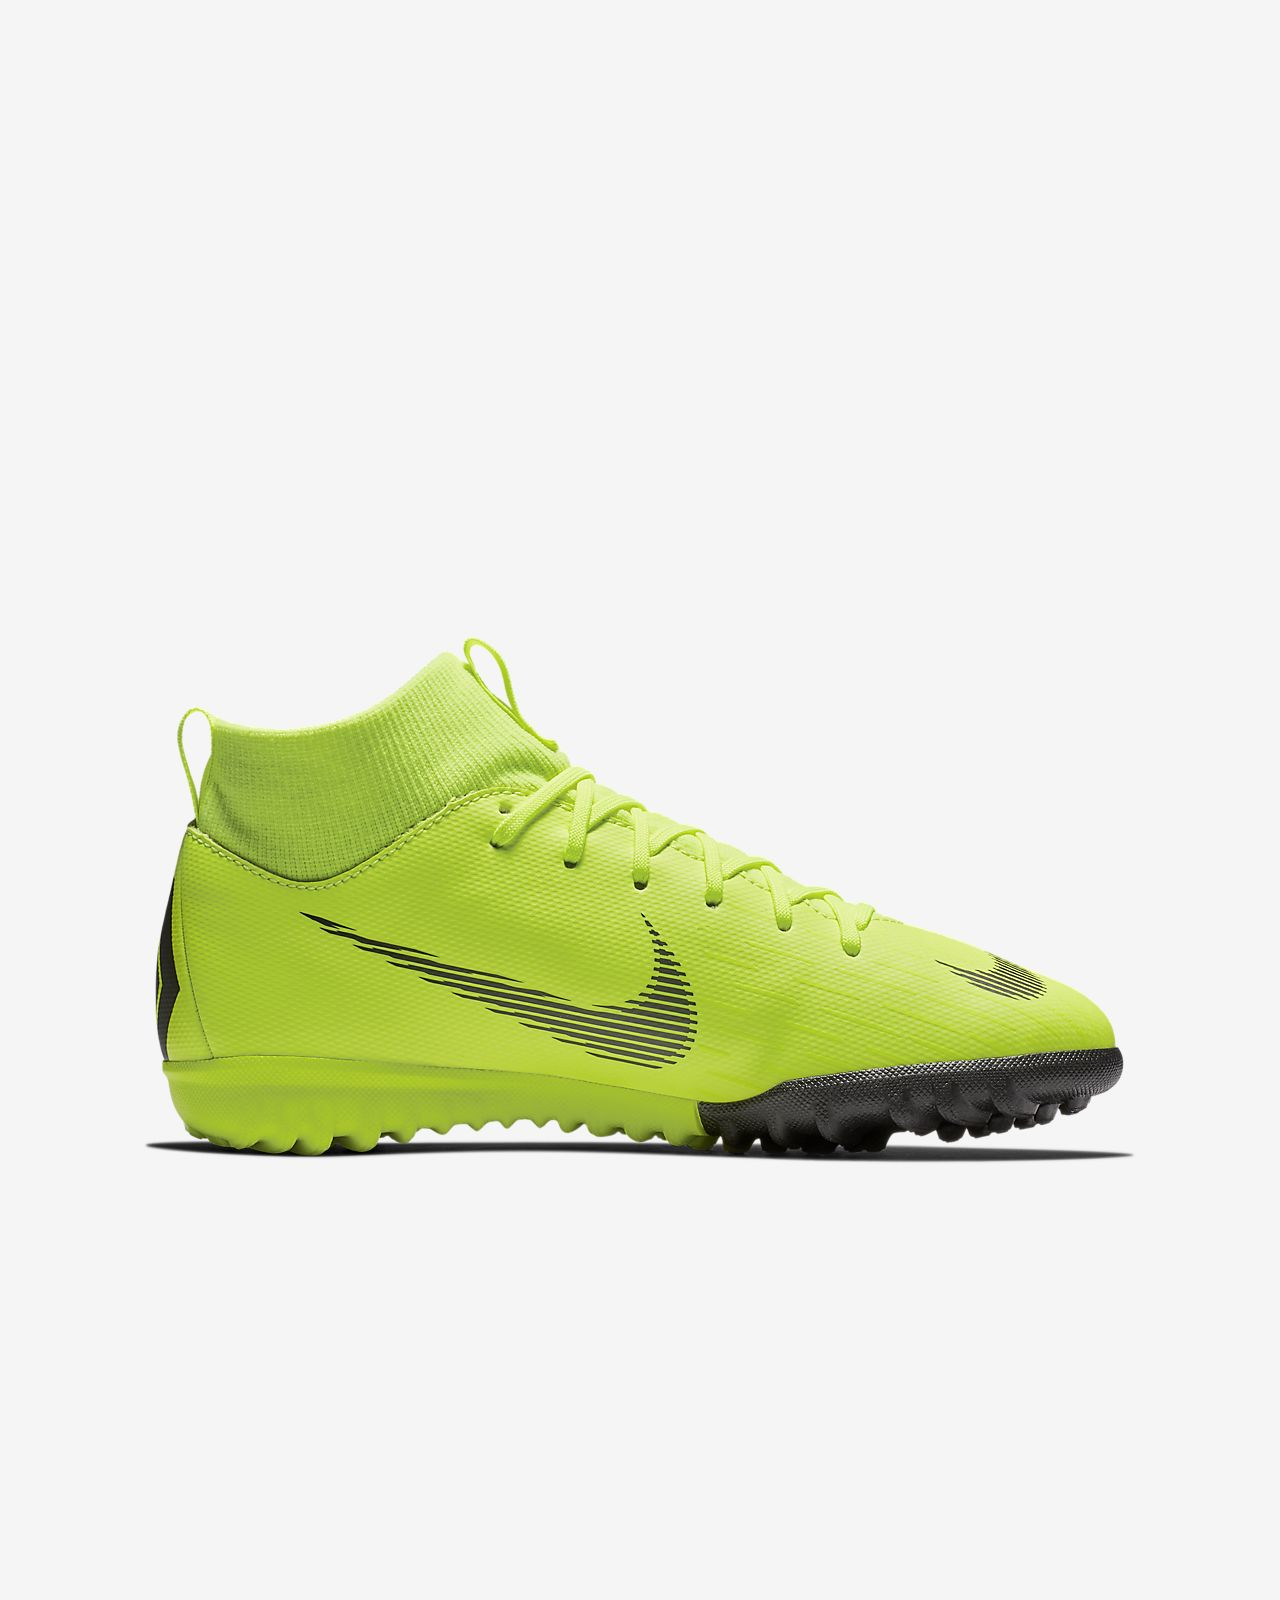 4bc2a3cfcfa ... Nike Jr. SuperflyX 6 Academy TF Little Big Kids  Artificial-Turf Soccer